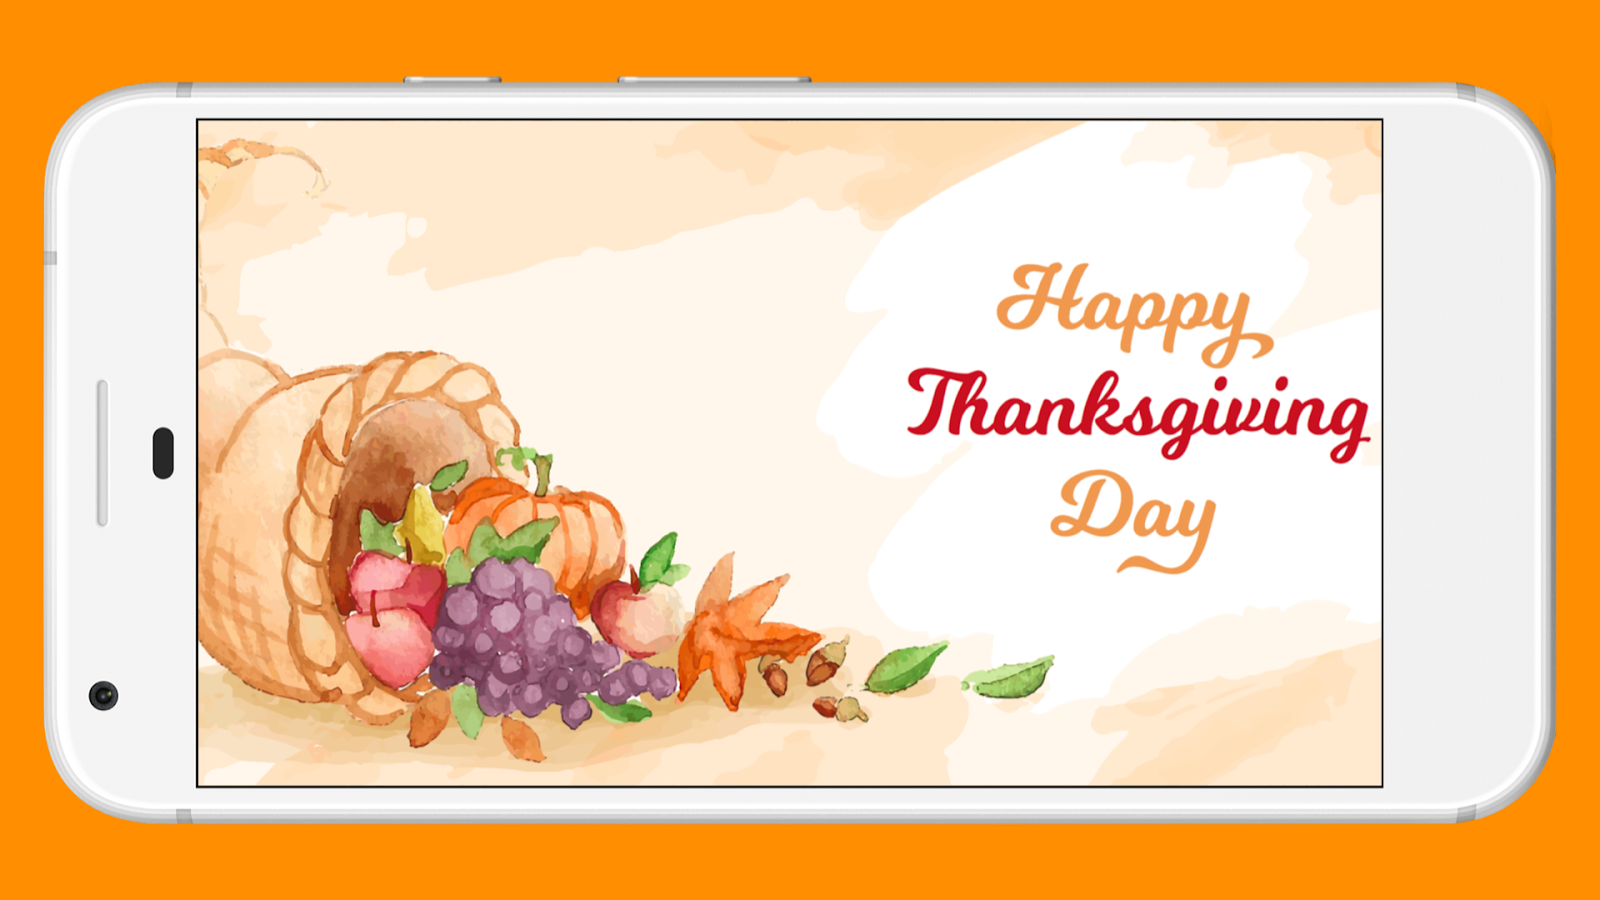 Thanksgiving Day Greeting Cards! - Android Apps on Google Play